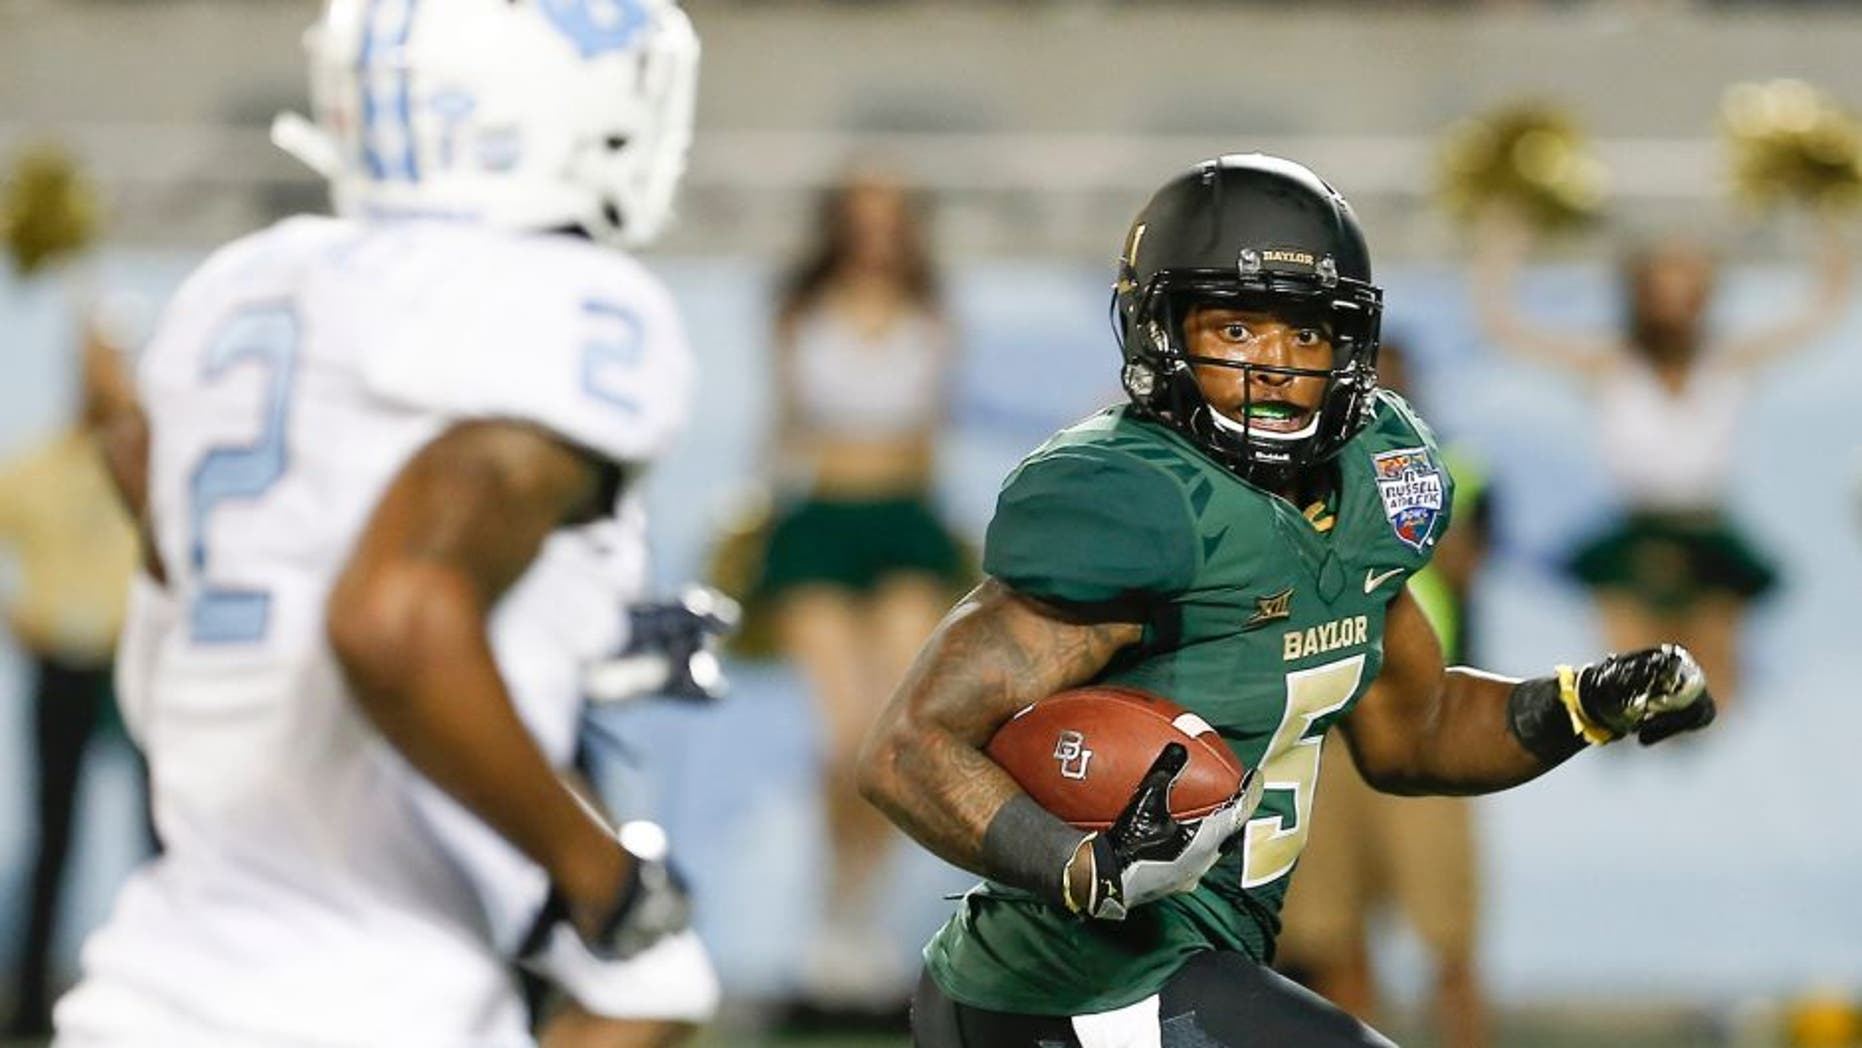 Dec 29, 2015; Orlando, FL, USA; Baylor Bears running back Johnny Jefferson (5) looks back at North Carolina Tar Heels cornerback Des Lawrence (2) before scoring on a touchdown run during the second quarter of a football game at Florida Citrus Bowl. Mandatory Credit: Reinhold Matay-USA TODAY Sports